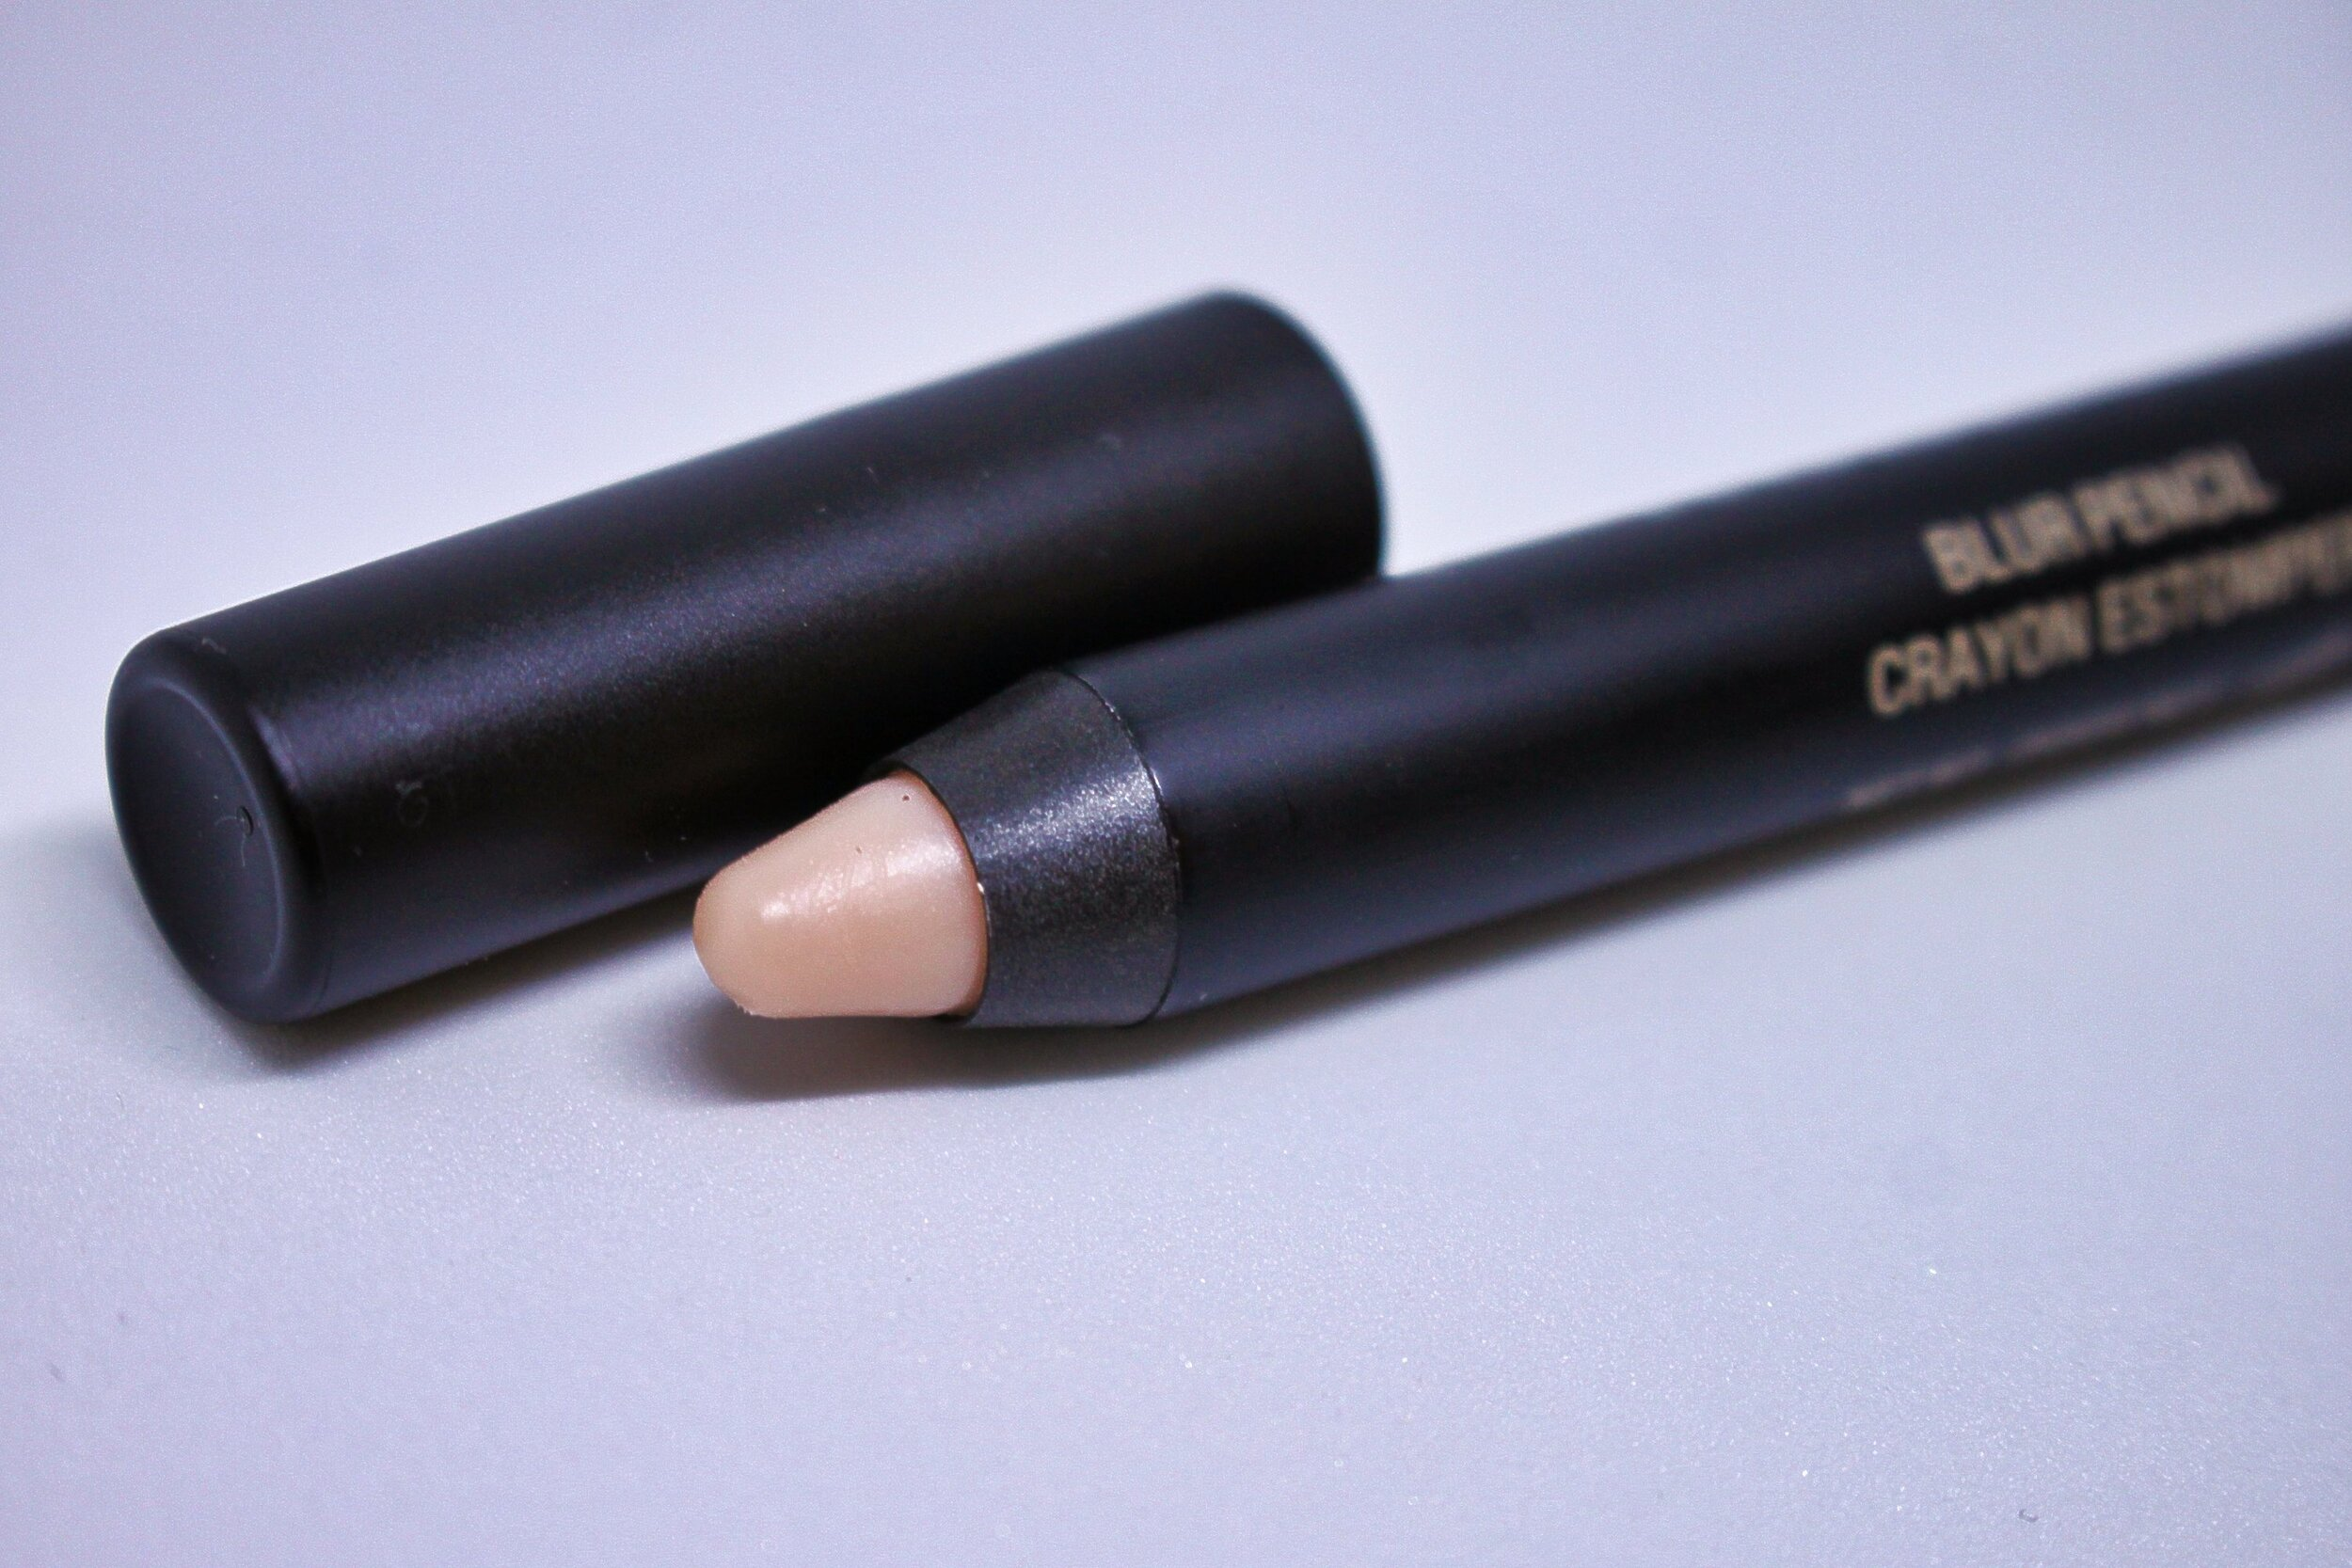 Nudestix Blur Pencil Review Just Bloom Beauty Blog